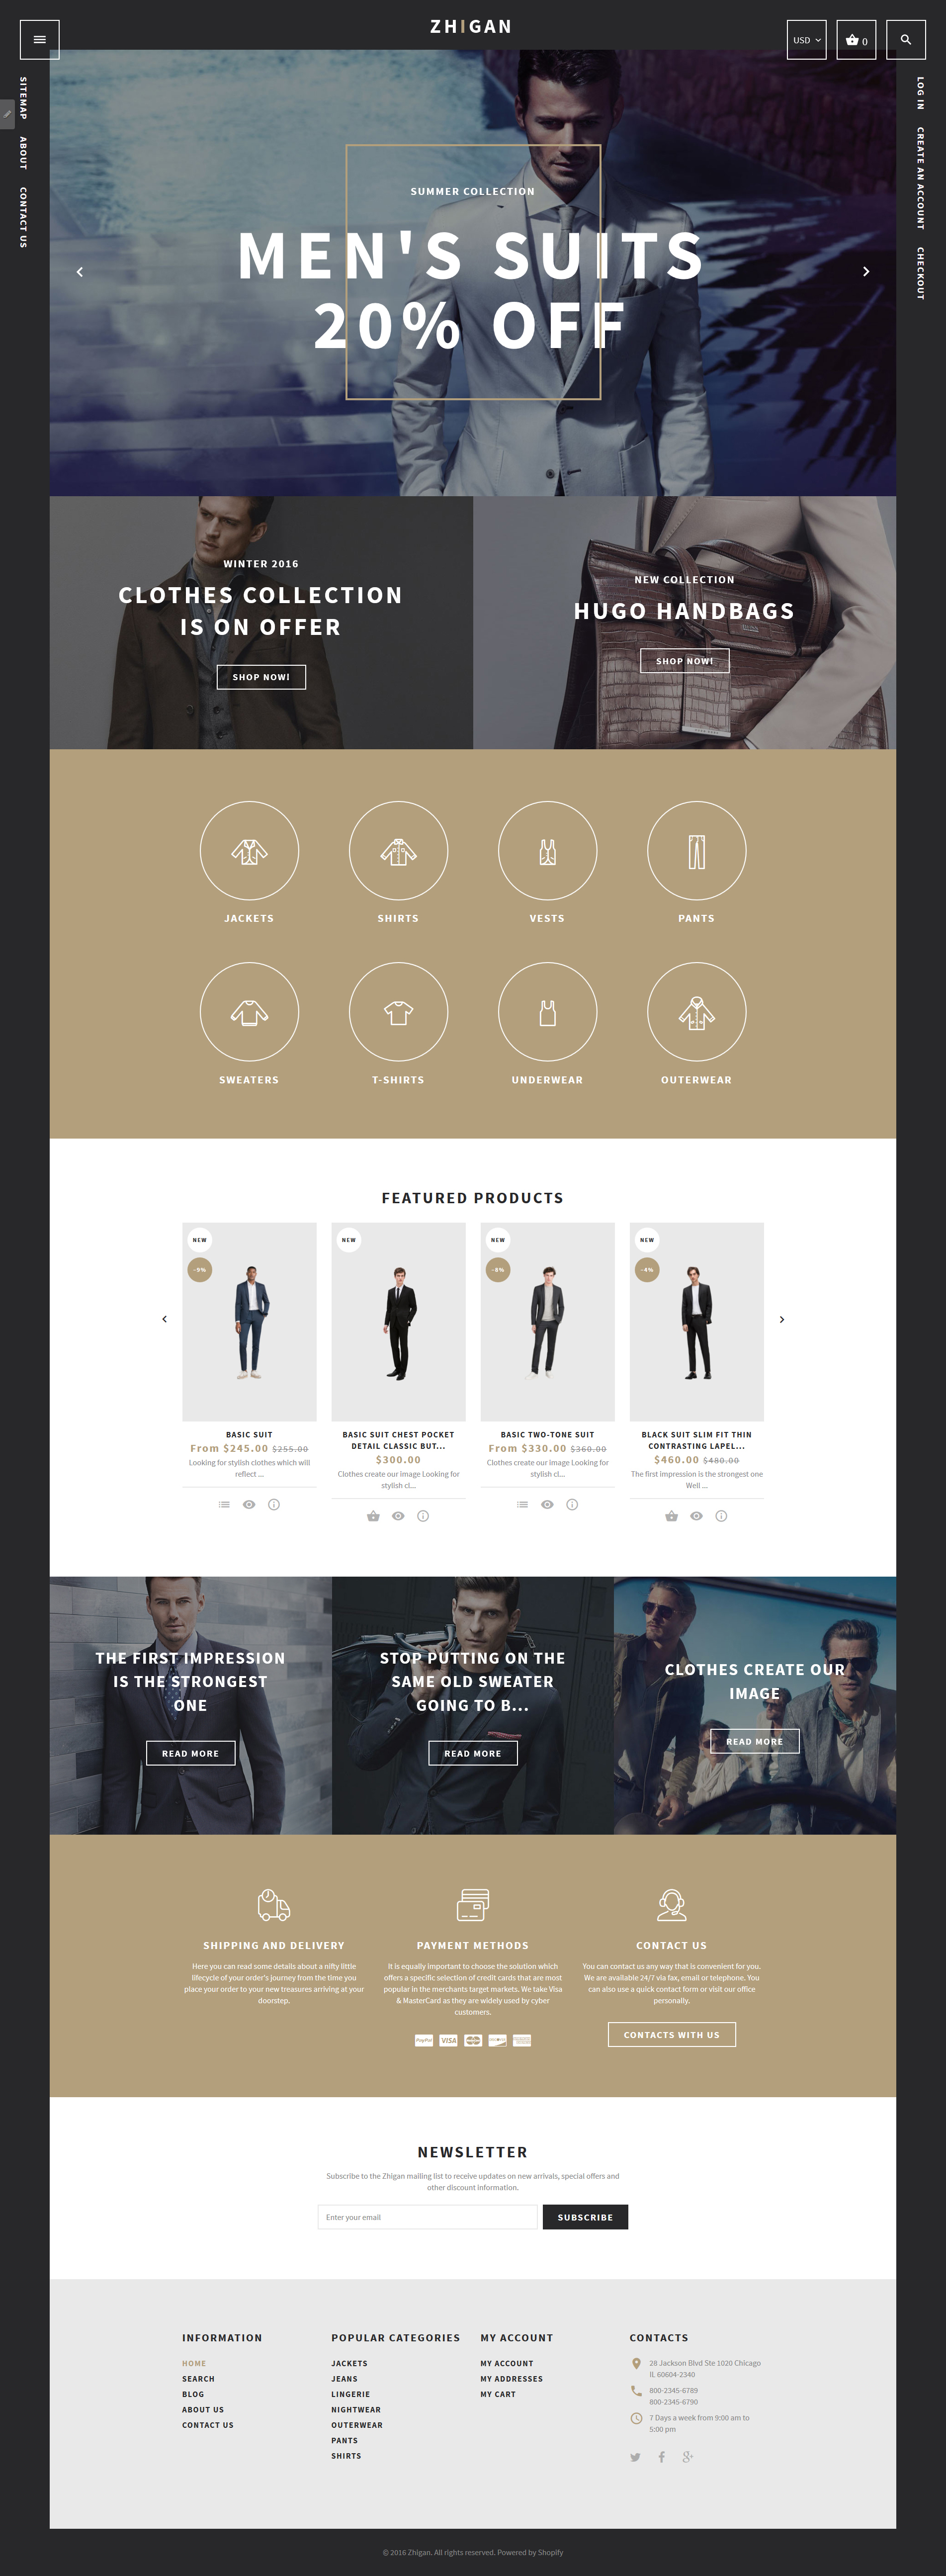 Clothing Store Shopify Theme - Shopify website templates